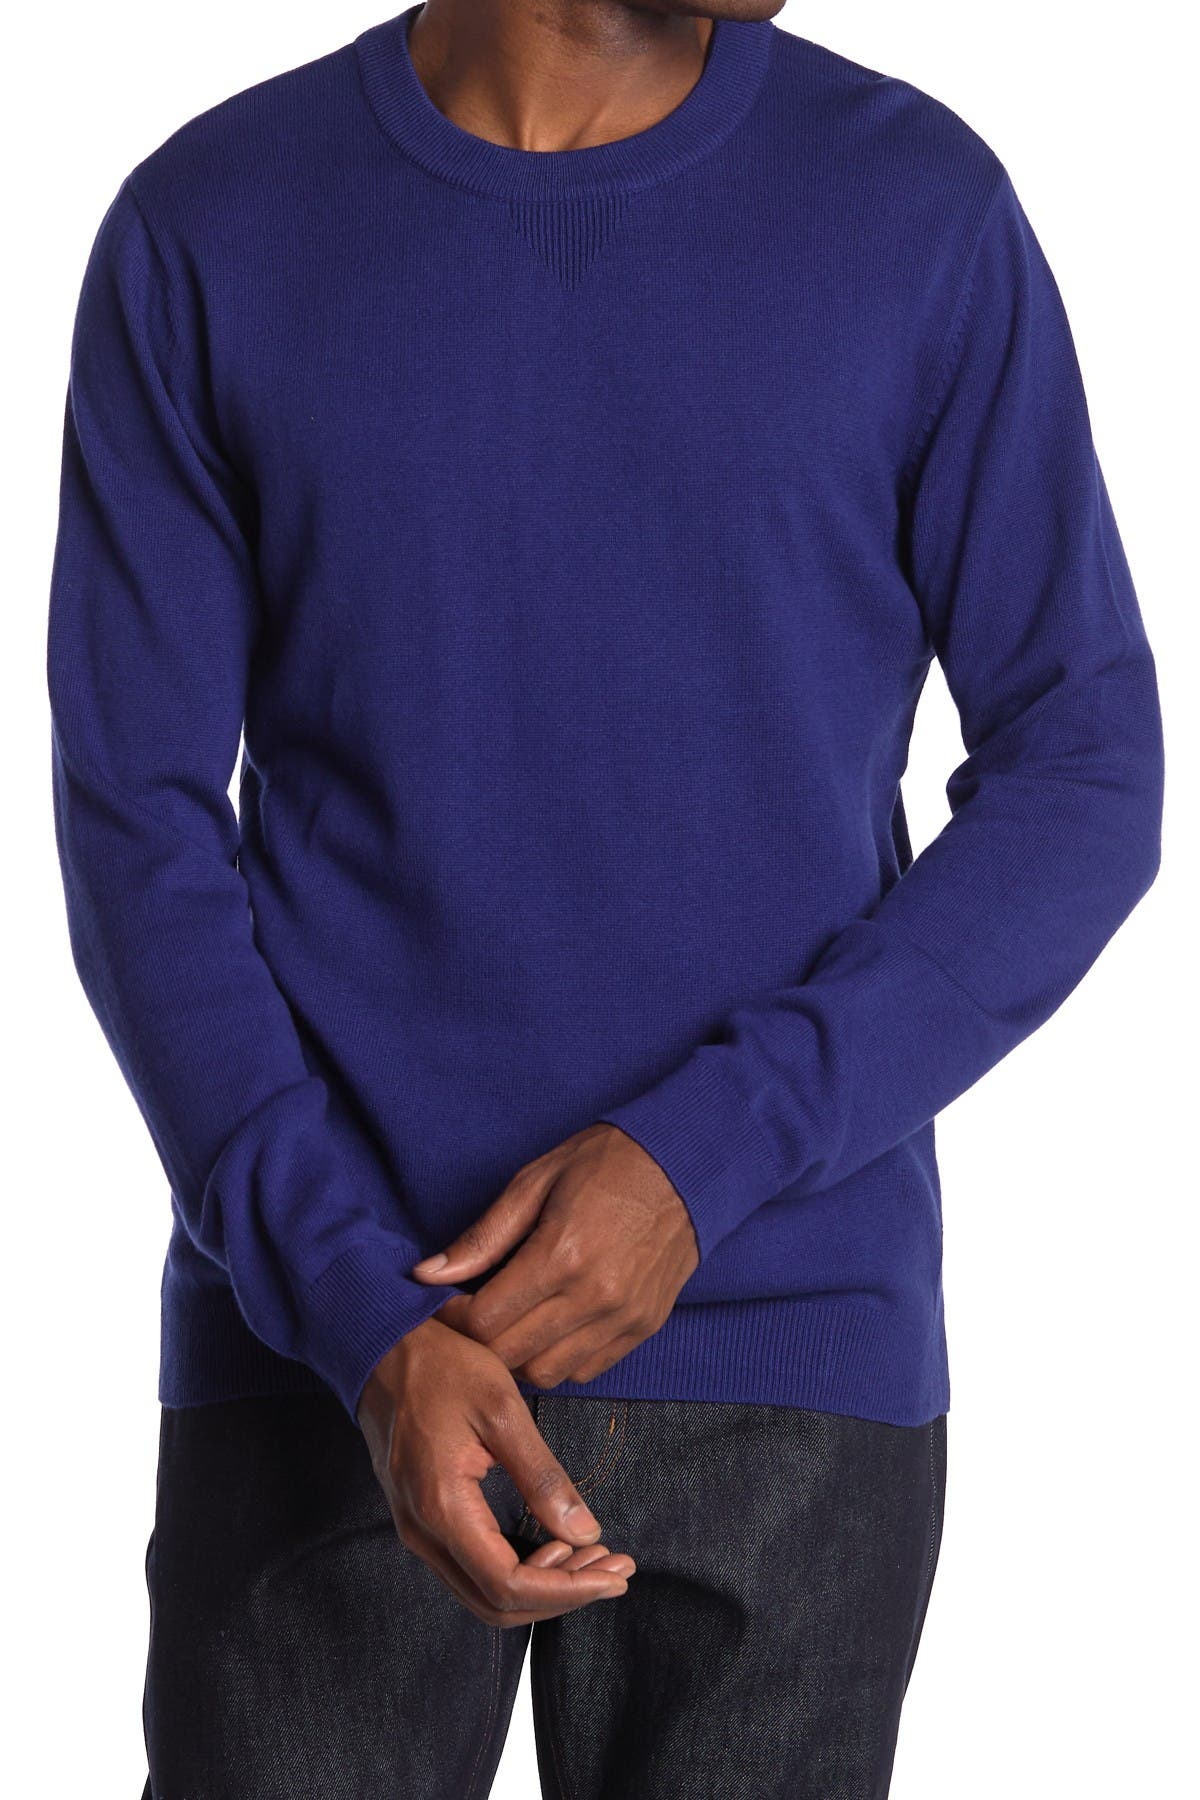 Image of SATURDAYS NYC Everyday Classic Knit Sweater